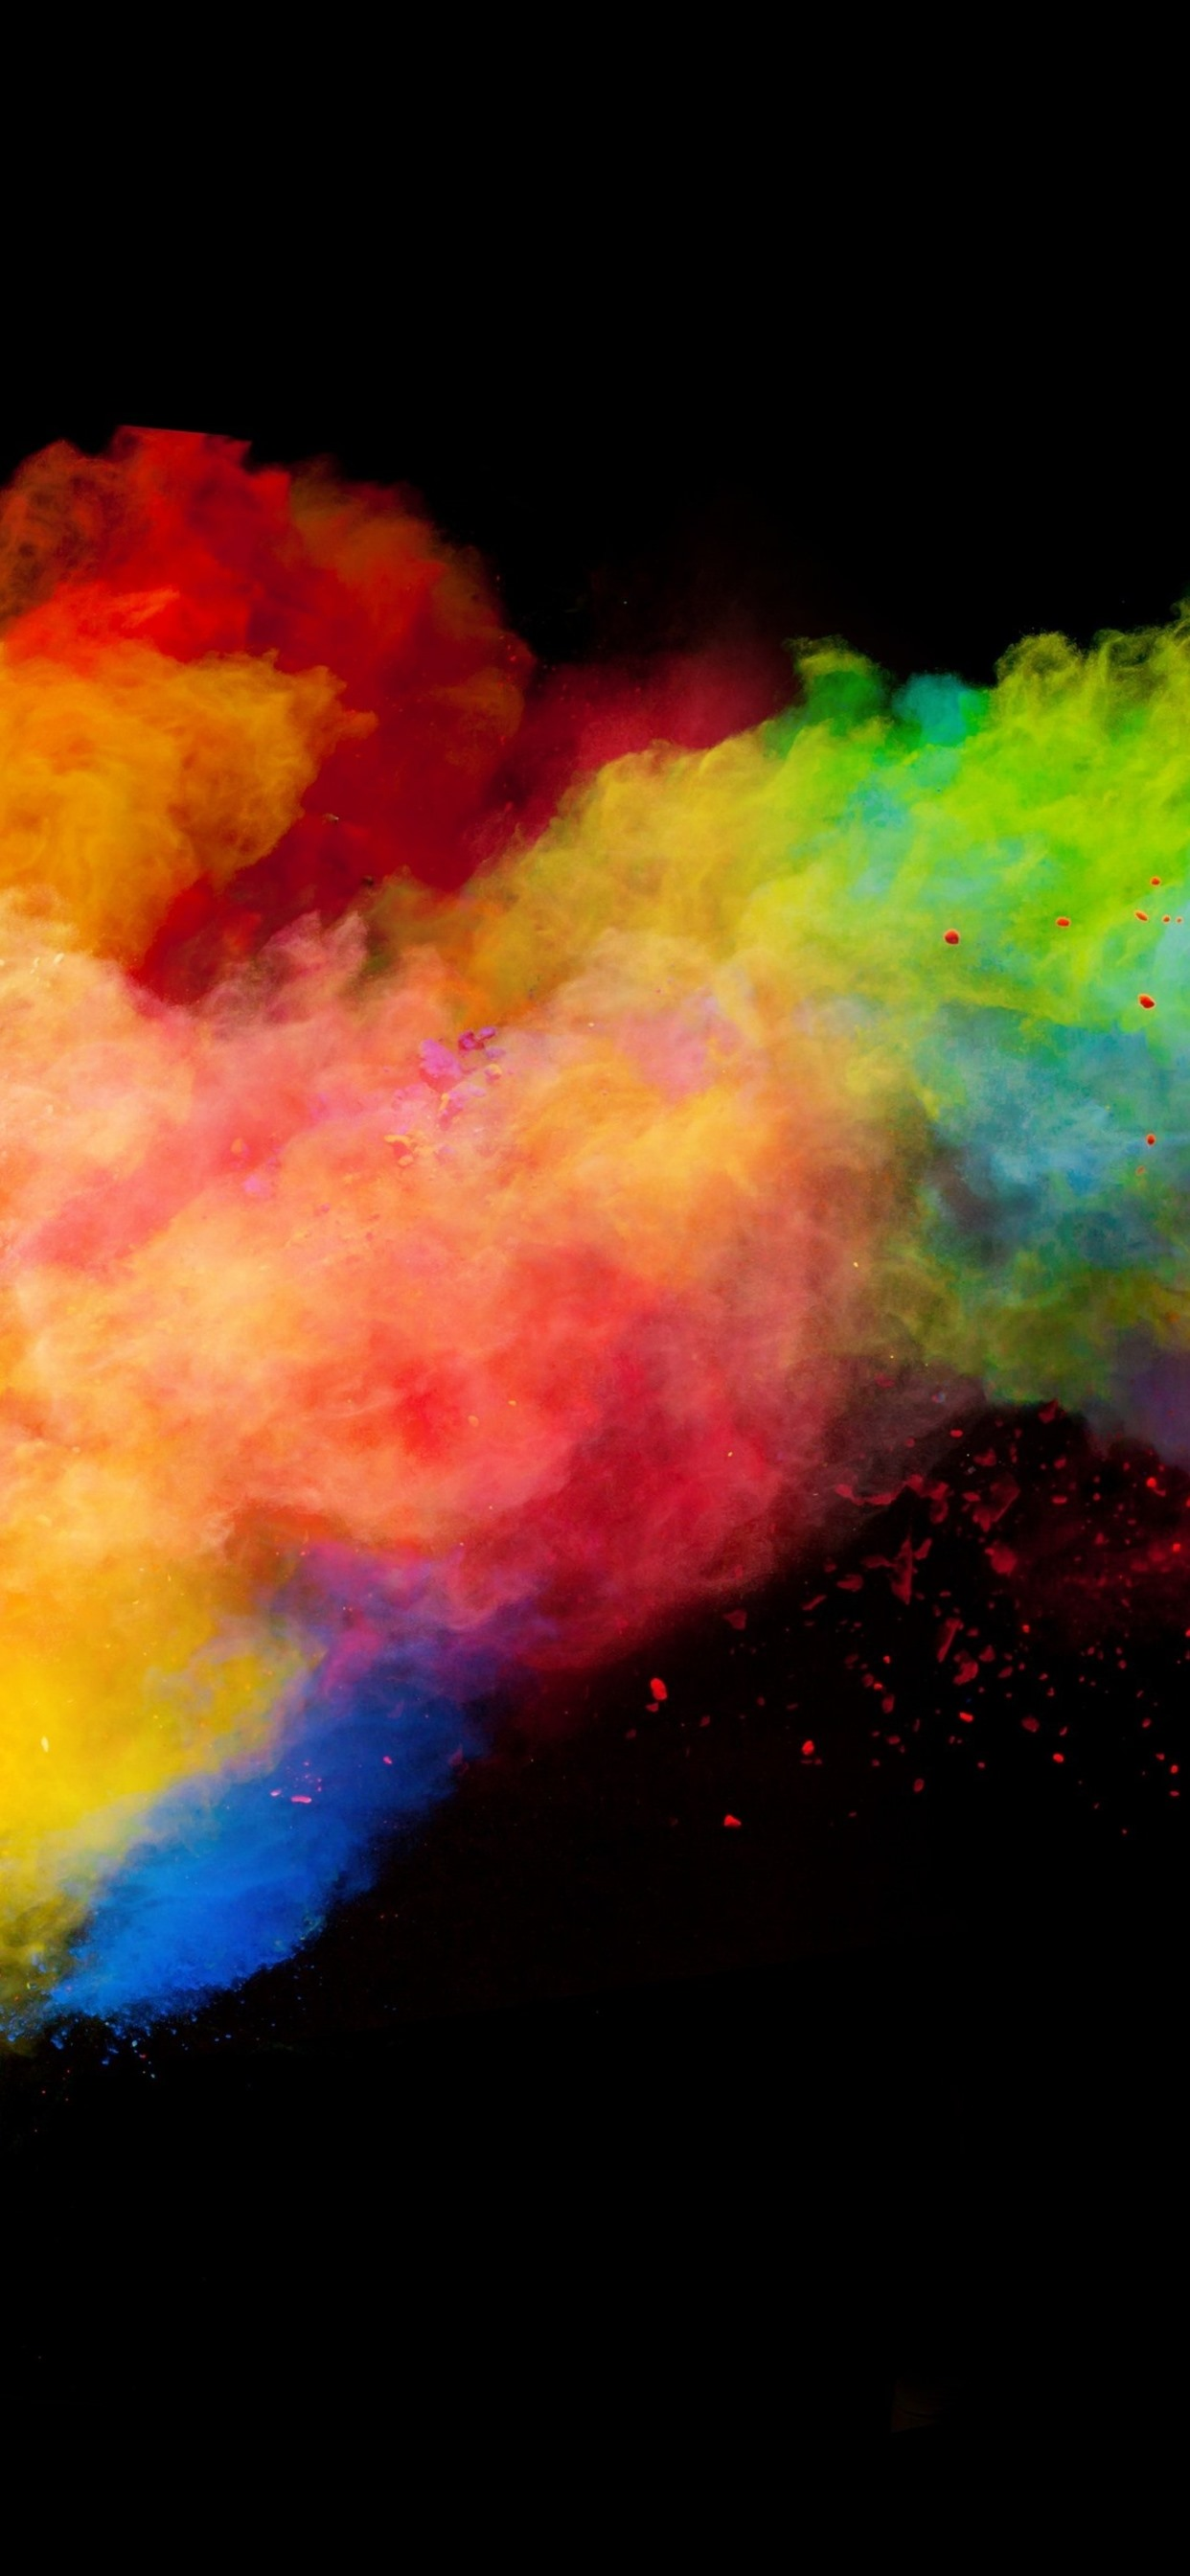 Colorful Smoke Rainbow Colors Black Background 1242x2688 Iphone 11 Pro Xs Max Wallpaper Background Picture Image